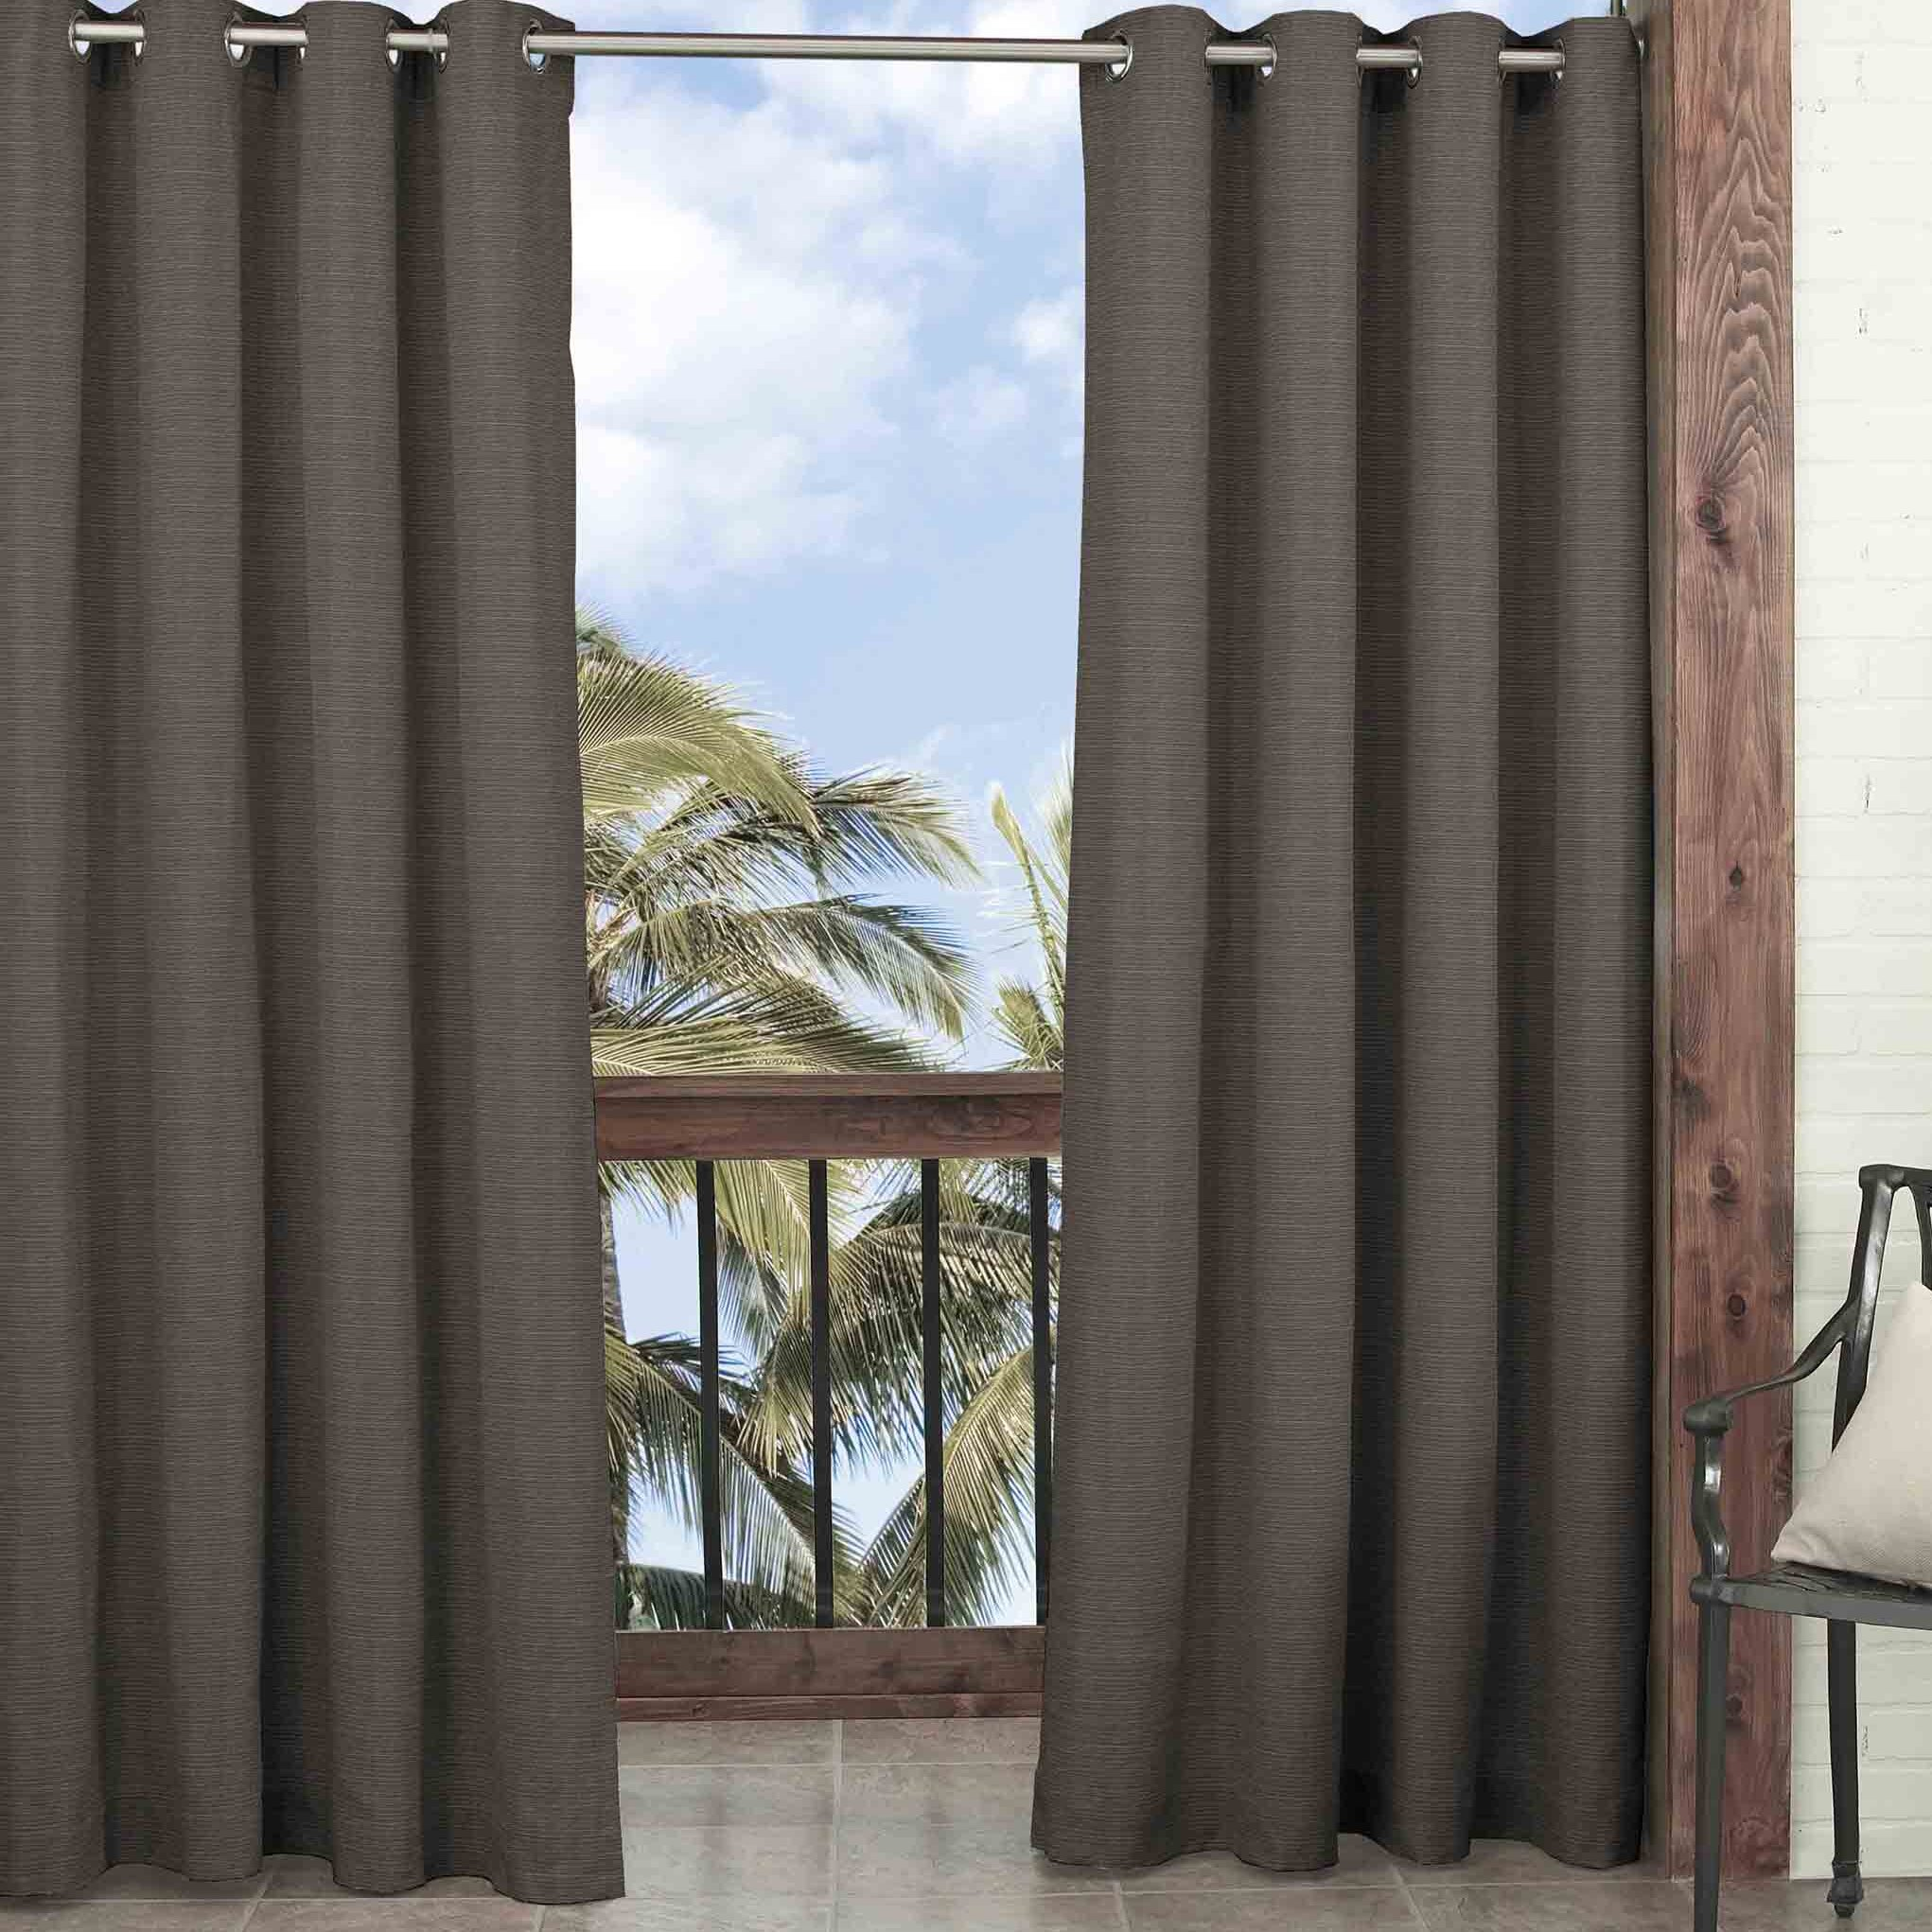 Striped outdoor curtains - Quick View